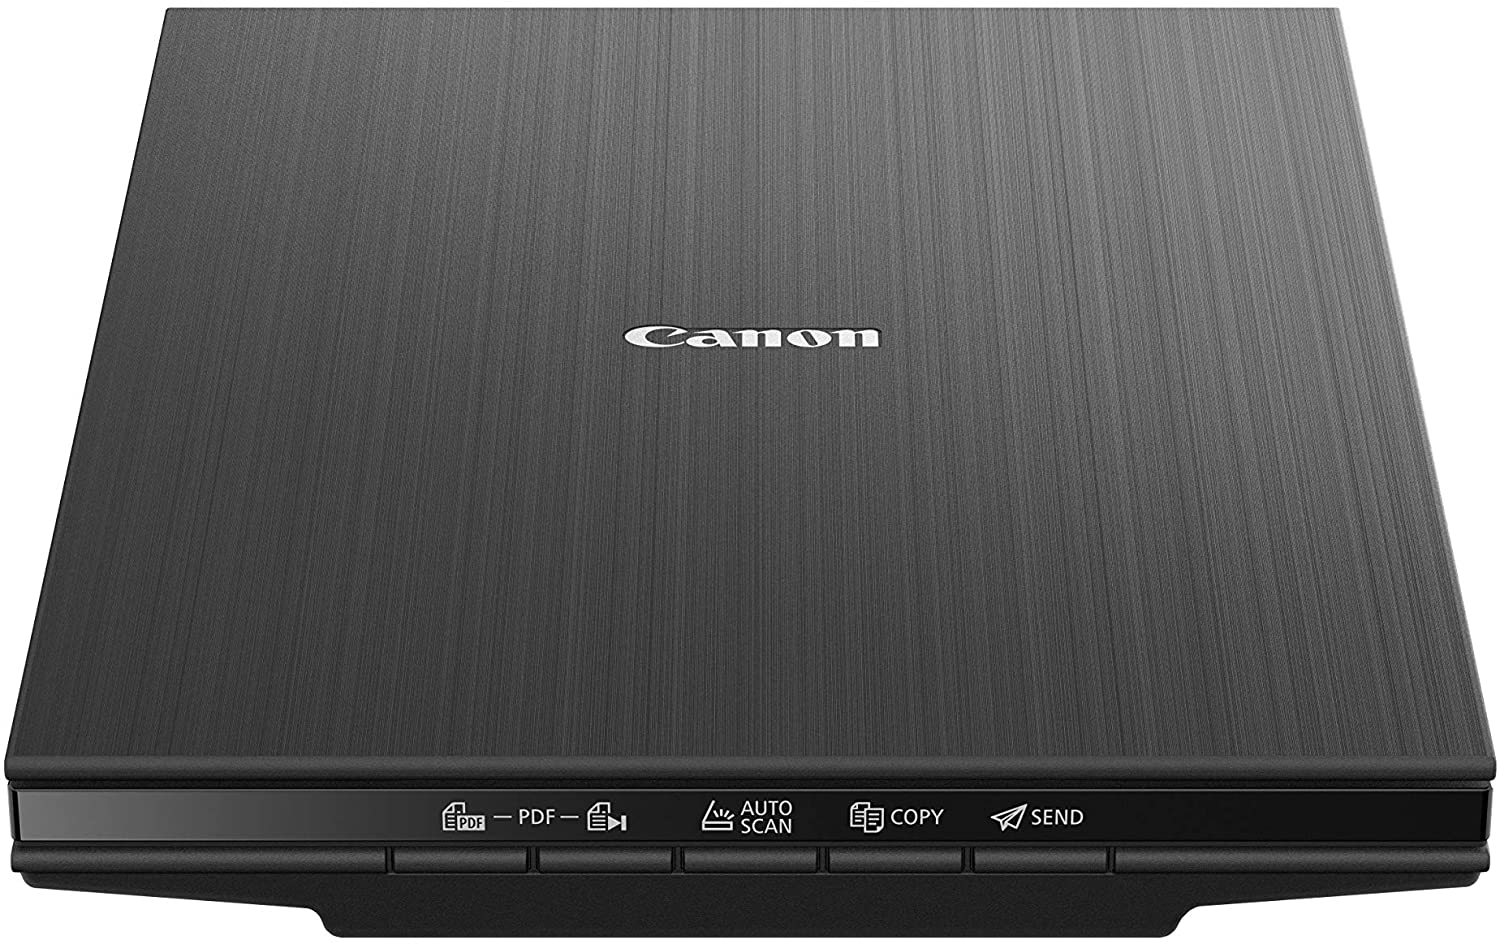 Canon LiDE 400 Colour Flatbed Scanner - Black uk reviews